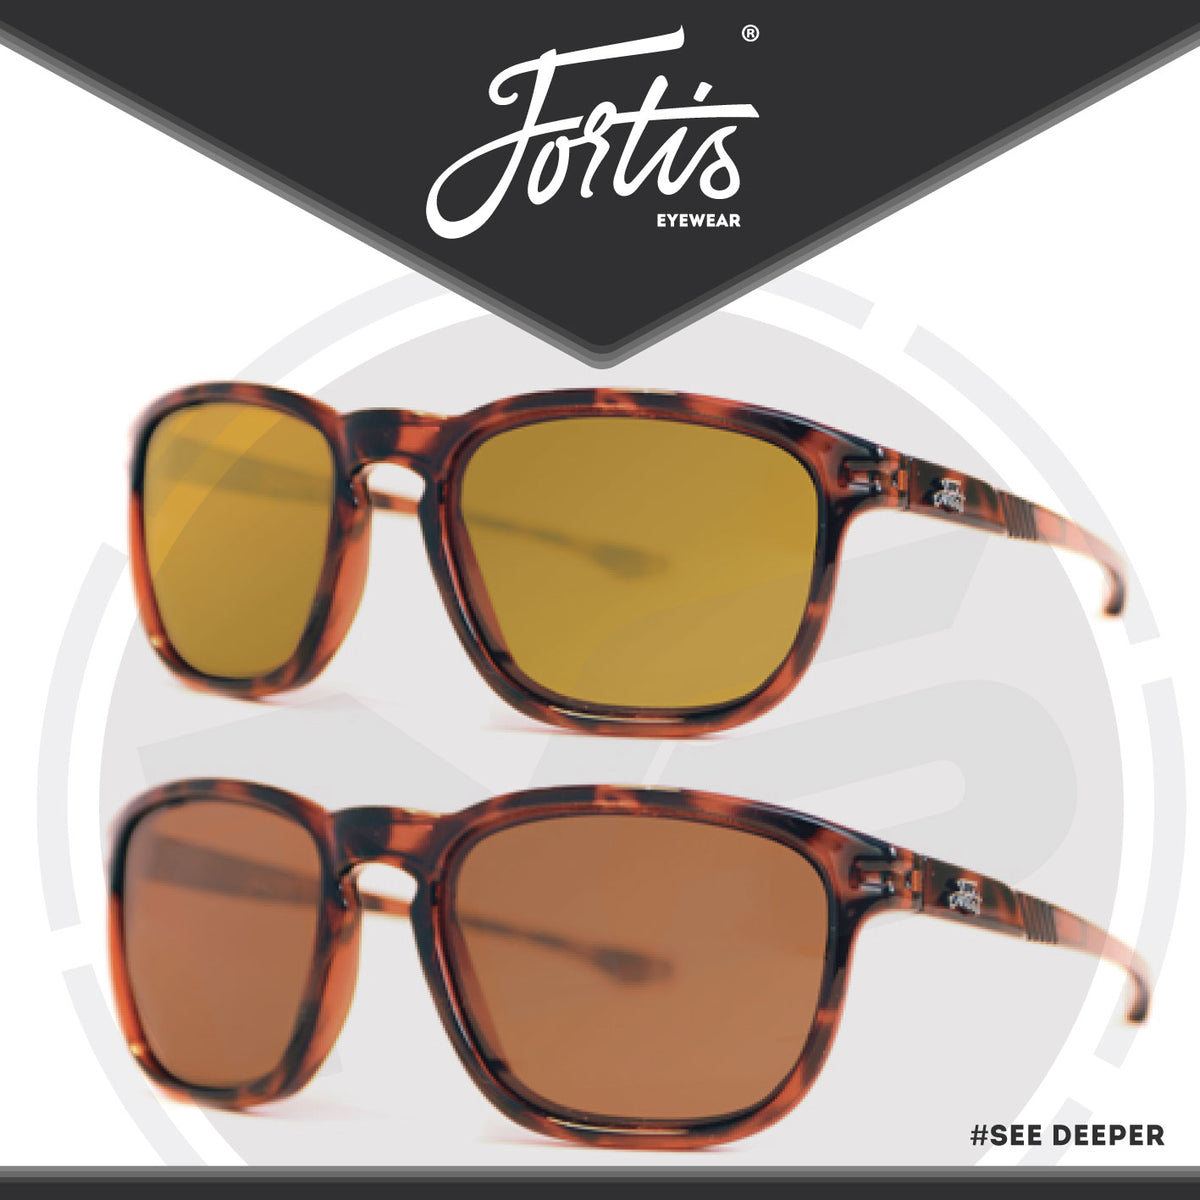 001ecb70af4 Fortis Eyewear Strokes Polarised Sunglasses – In Your Sights